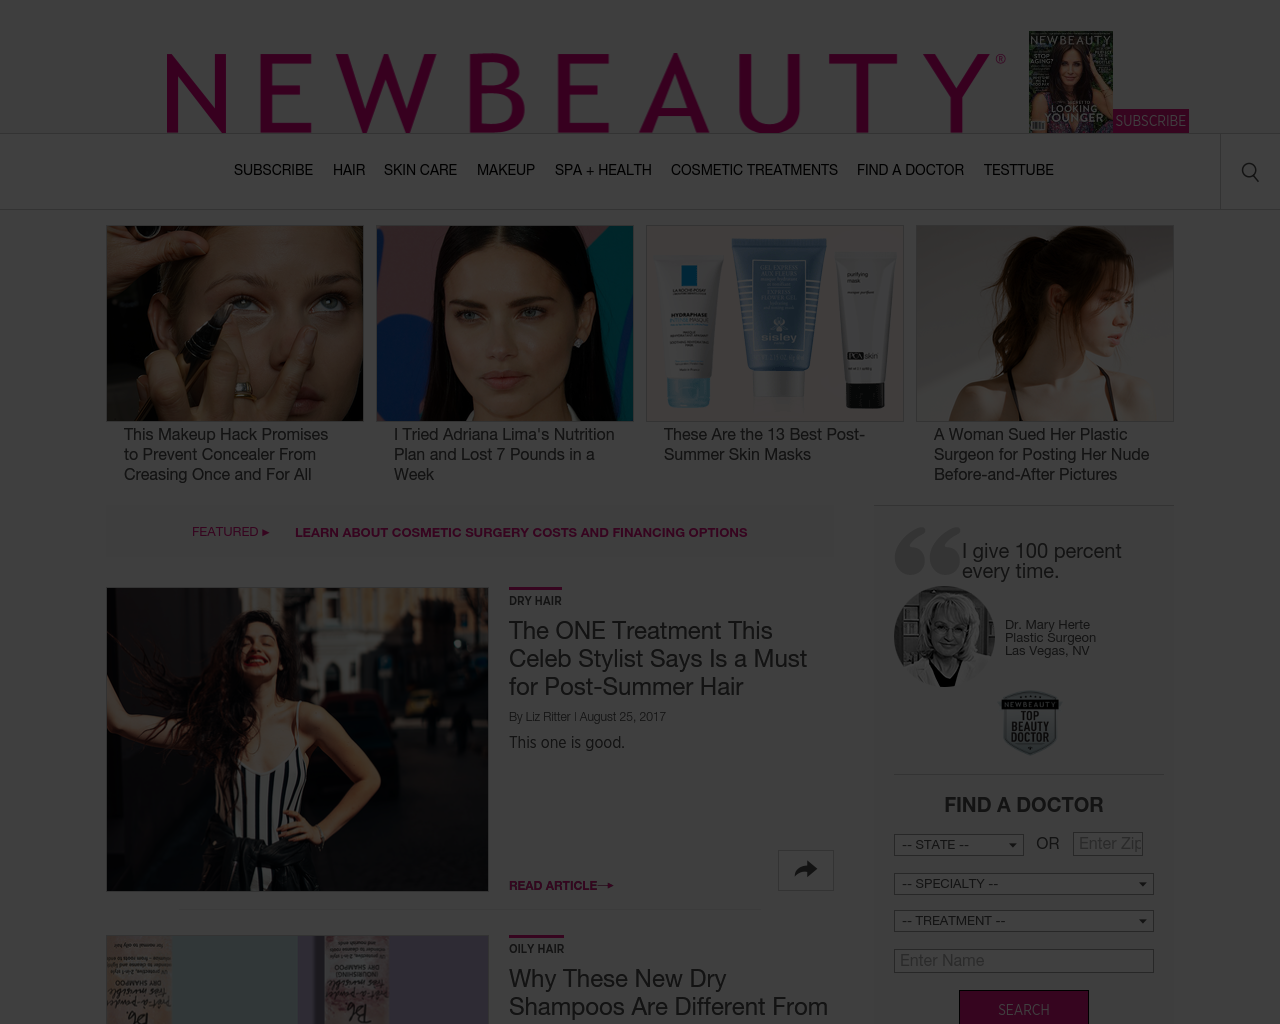 New-Beauty-Advertising-Reviews-Pricing